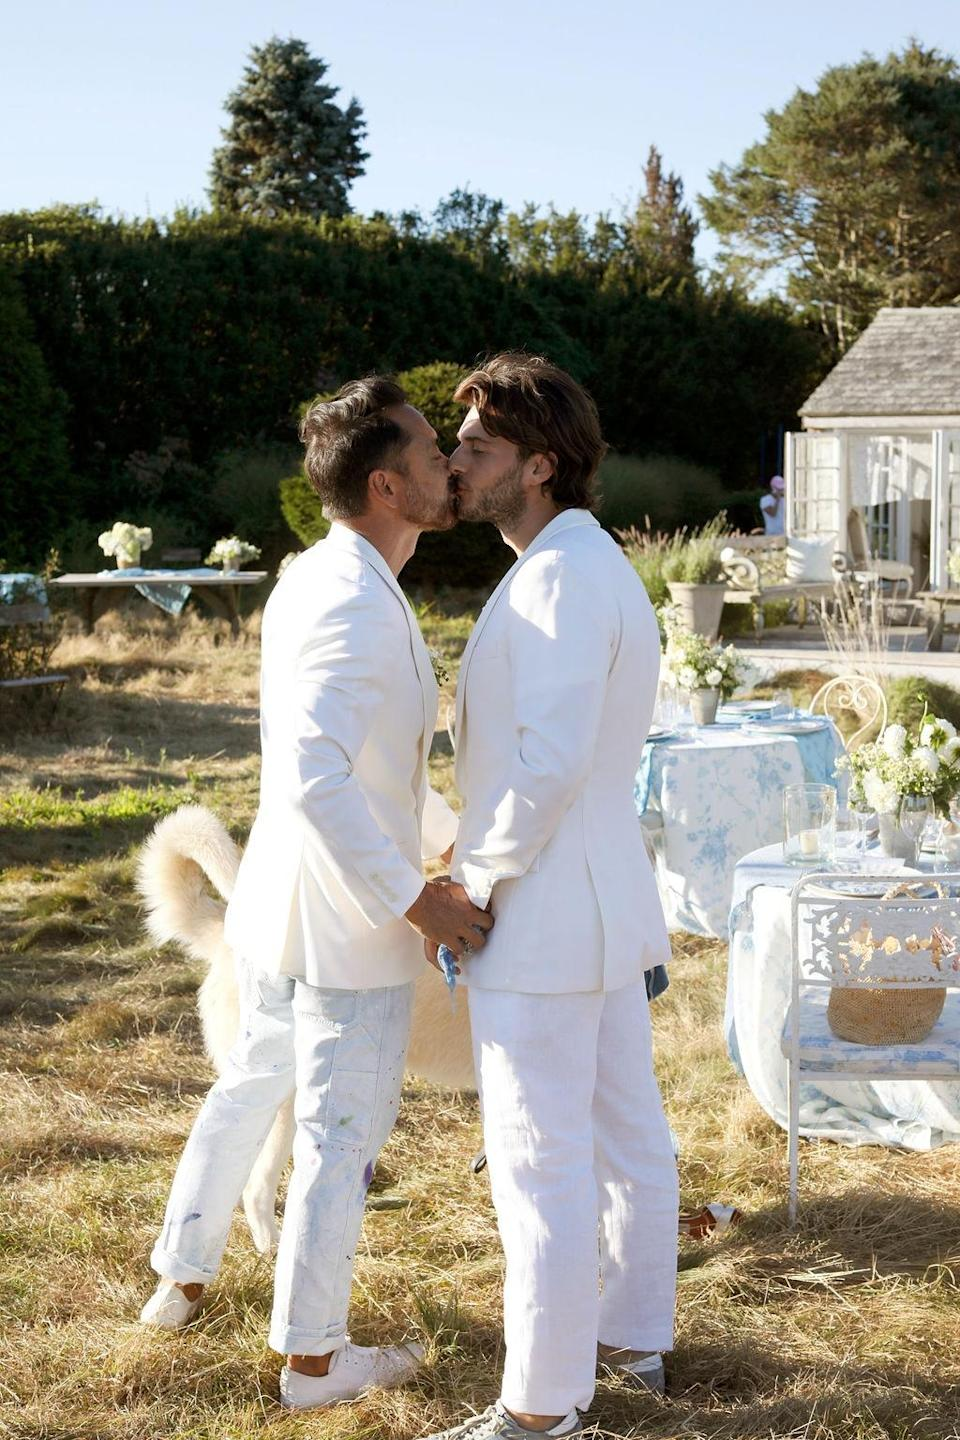 """""""After dancing our way back up the aisle, we stopped for one more kiss,"""" Nicholas says. """"A 'can you believe it?!"""" moment with our little family."""""""